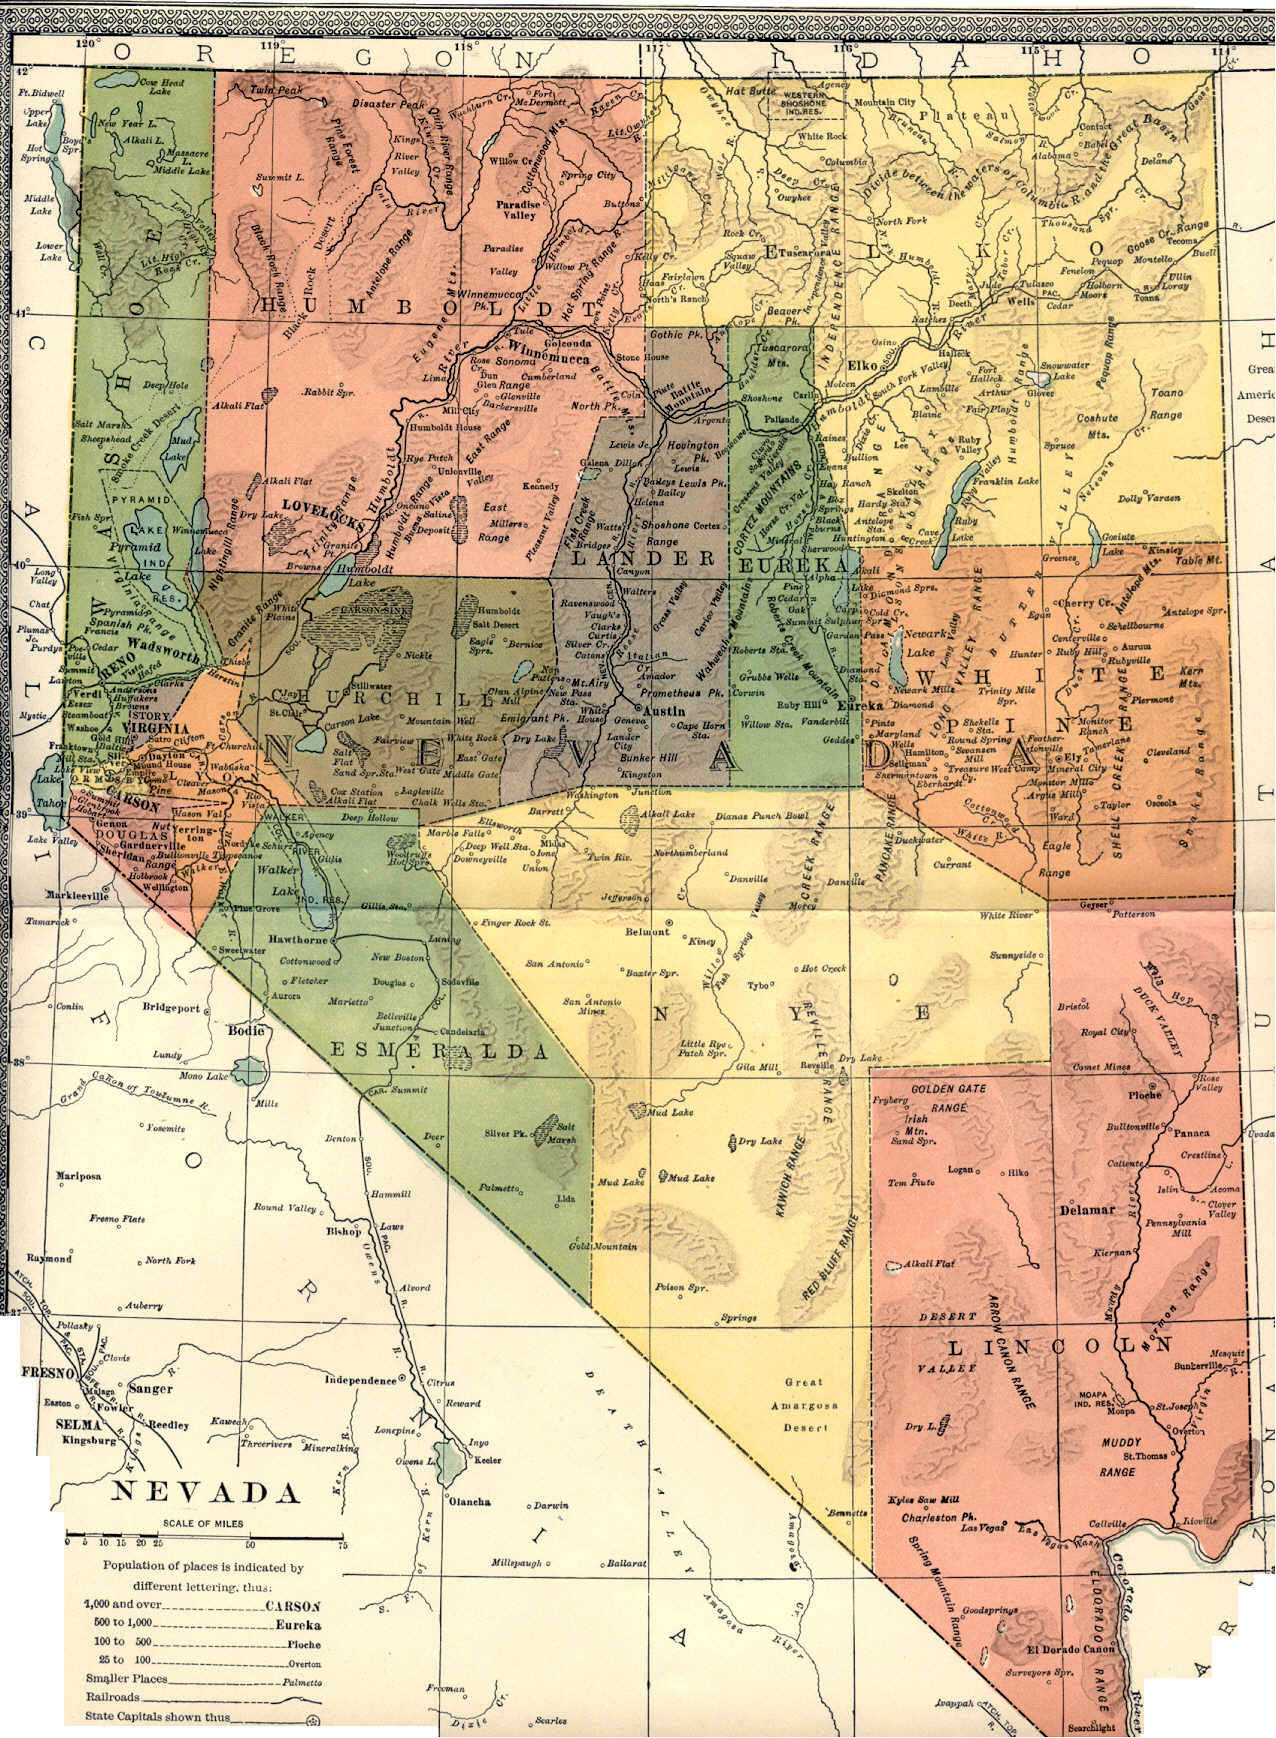 Nevada Maps Nevada Digital Map Library Table of Contents United